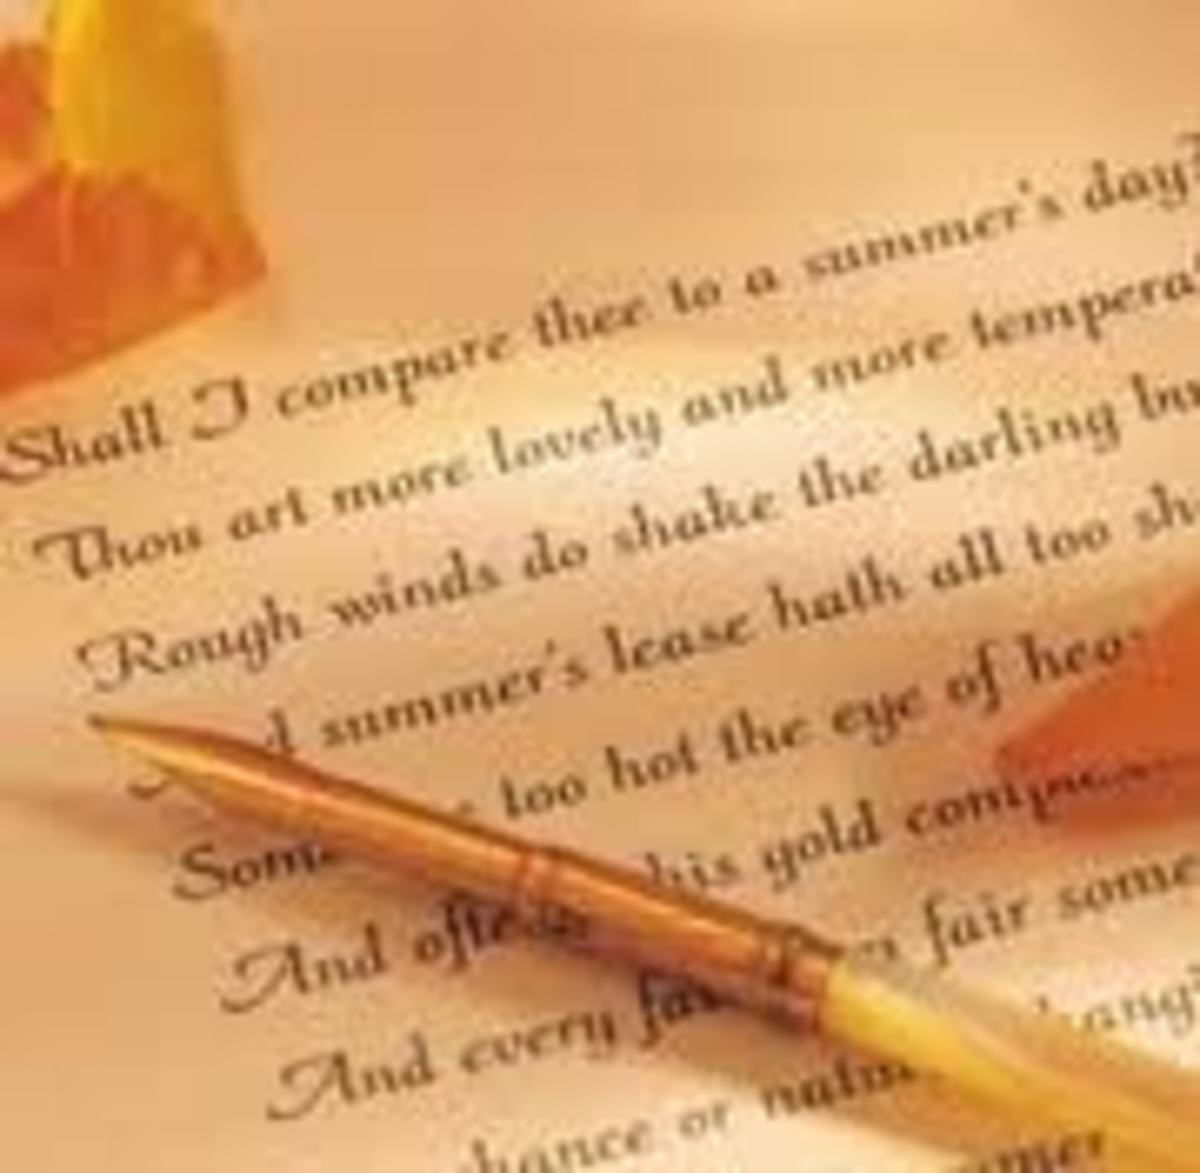 Shakespeare's Sonnet 18.  Iambic pentameter first appeared in Chaucer's Canterbury Tales in late 14th century.